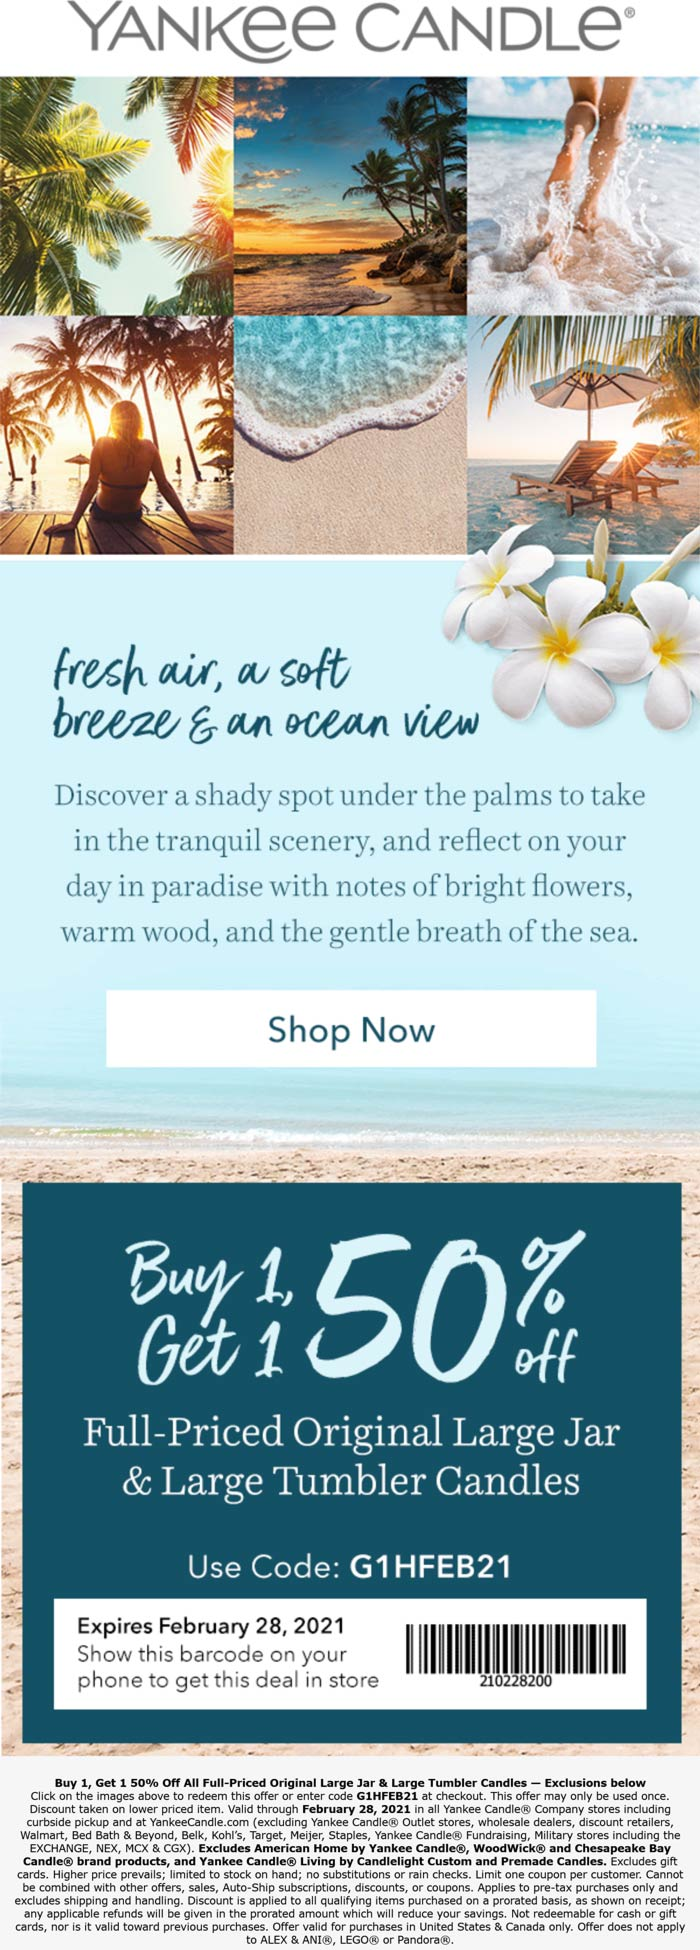 Yankee Candle stores Coupon  Second large tumbler 50% off at Yankee Candle, or online via promo code G1HFEB21 #yankeecandle